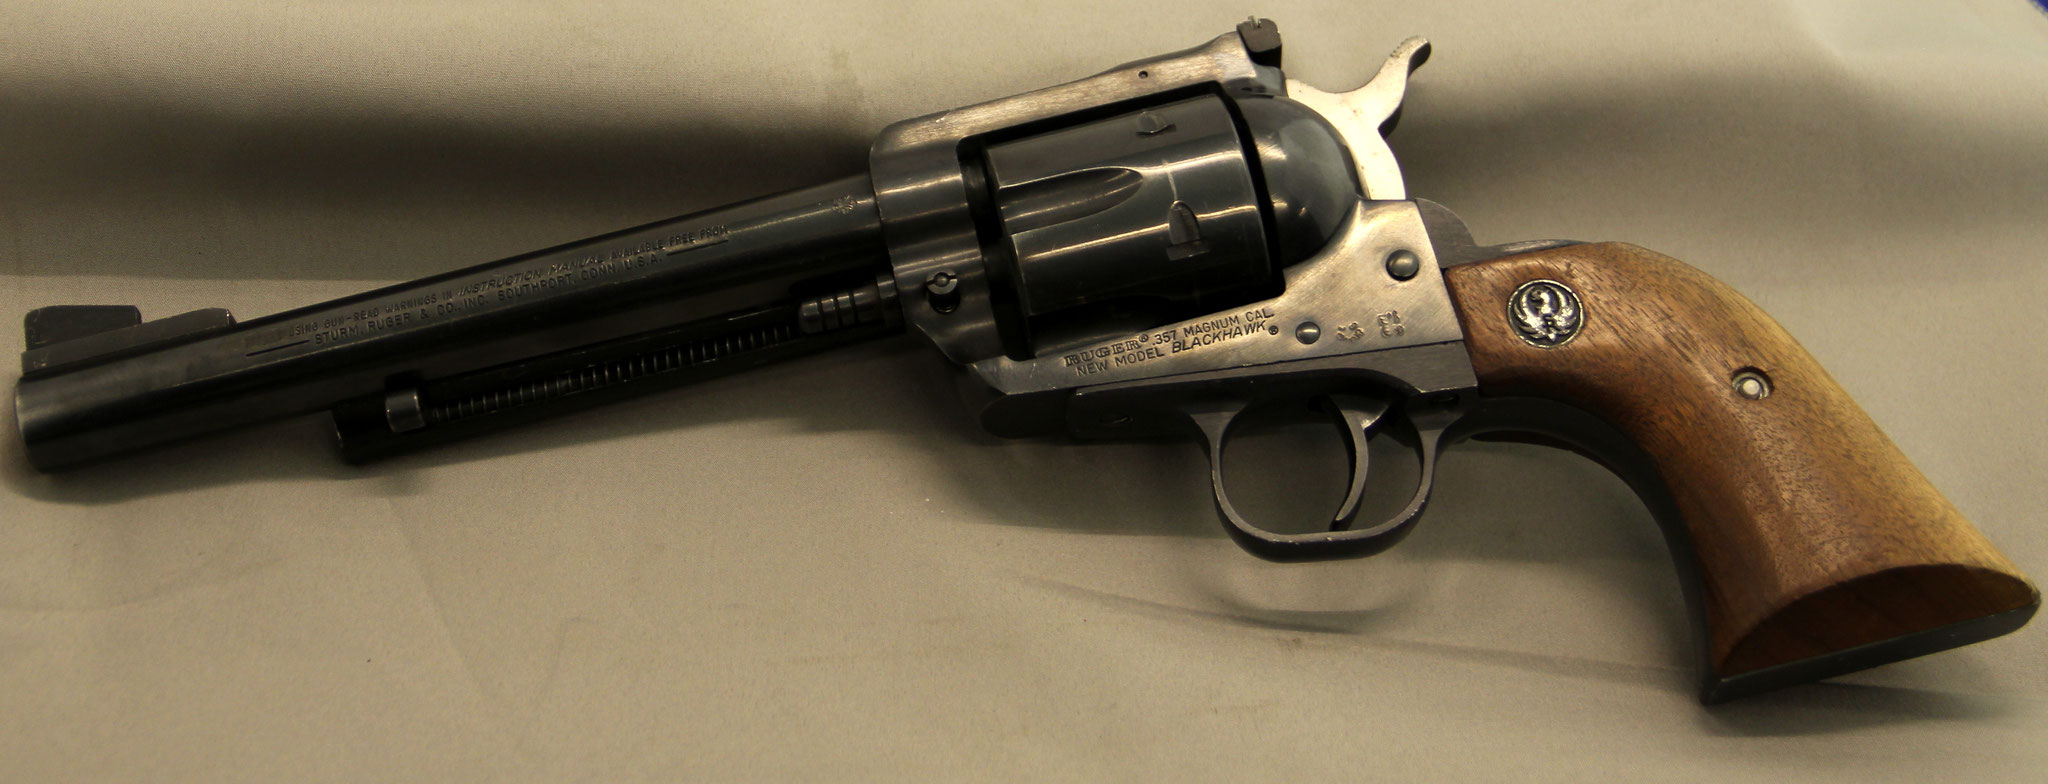 Ruger New Model Blackhawk. Cert. no. 53 € 475,-